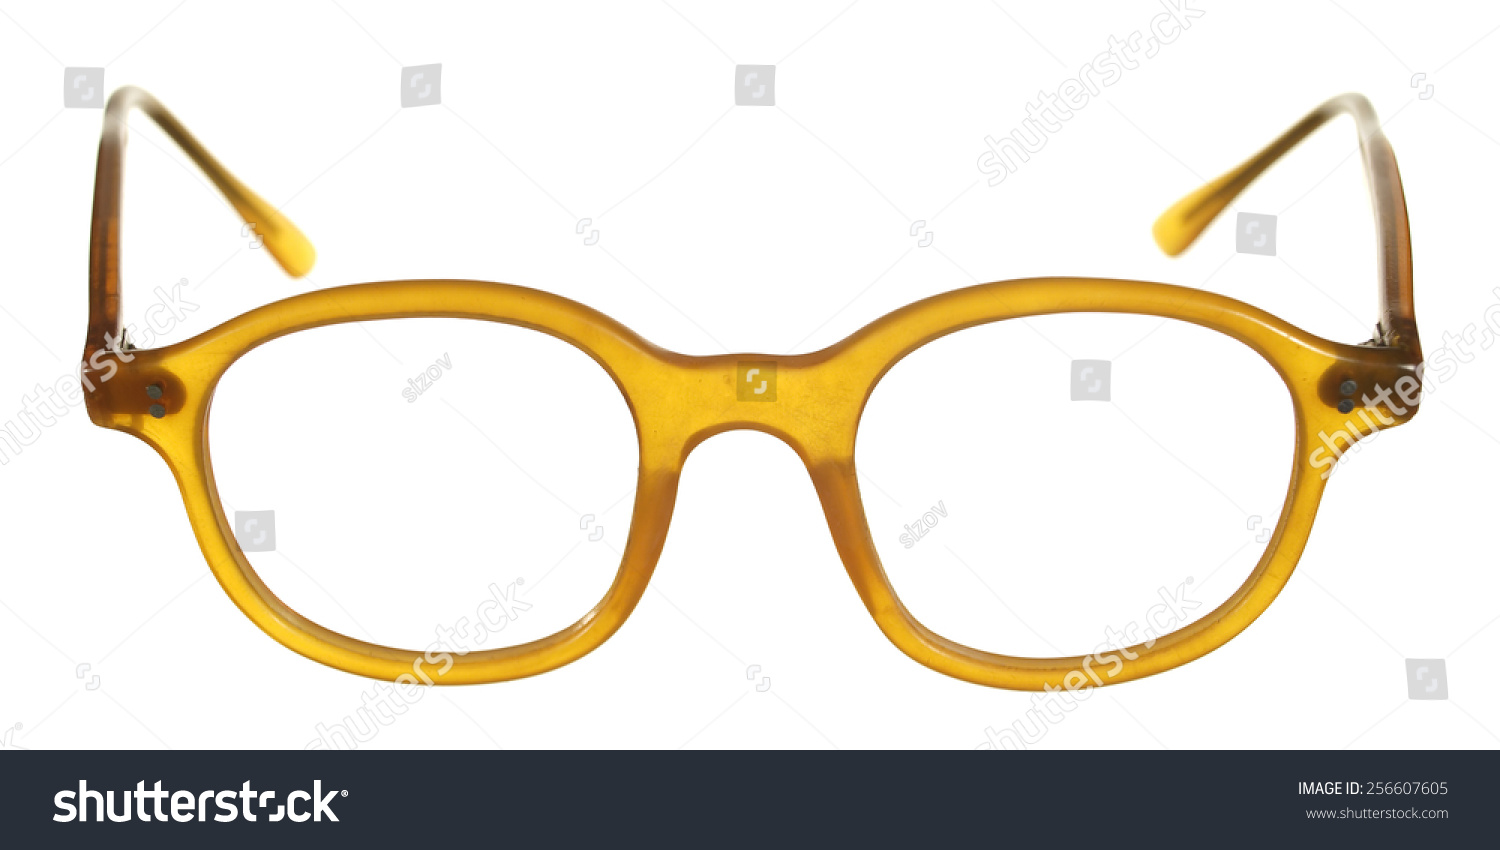 Old Fashioned Glasses Frame : Old-Fashioned Glasses Frame Of Plastic Isolated On White ...